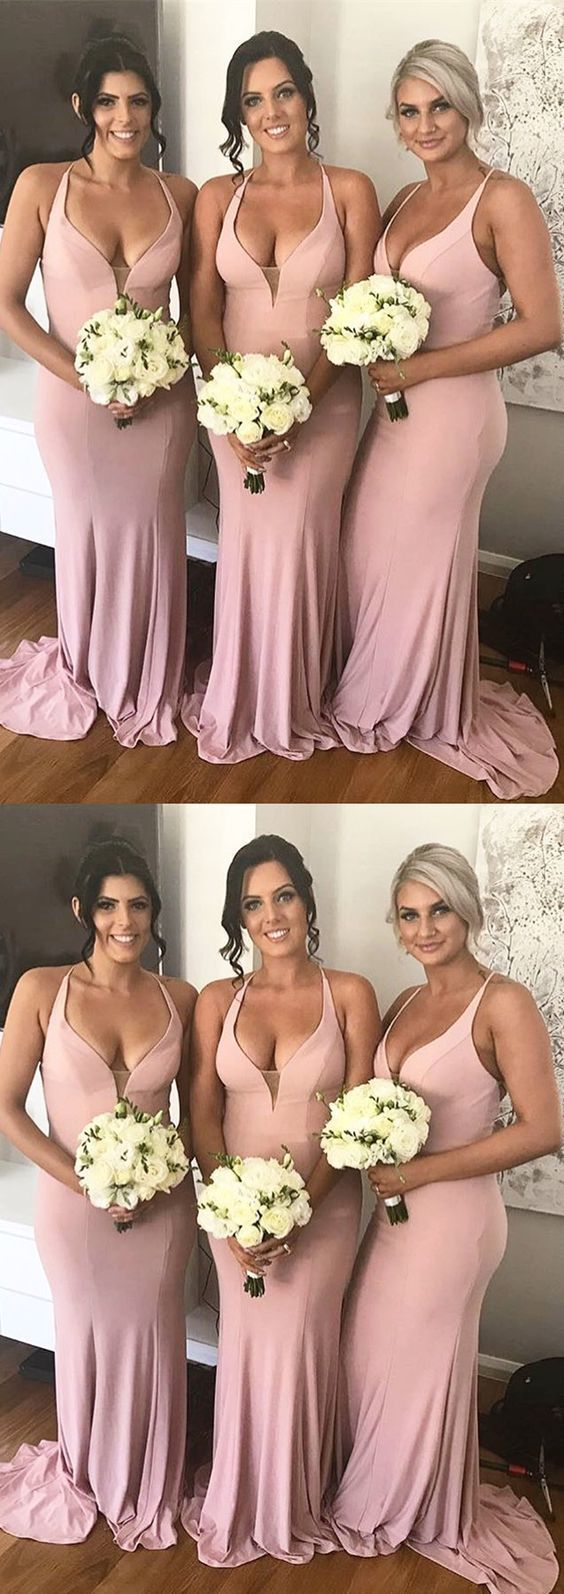 pink long bridesmaid dresses, mermaid long bridesmaid dresses, wedding party